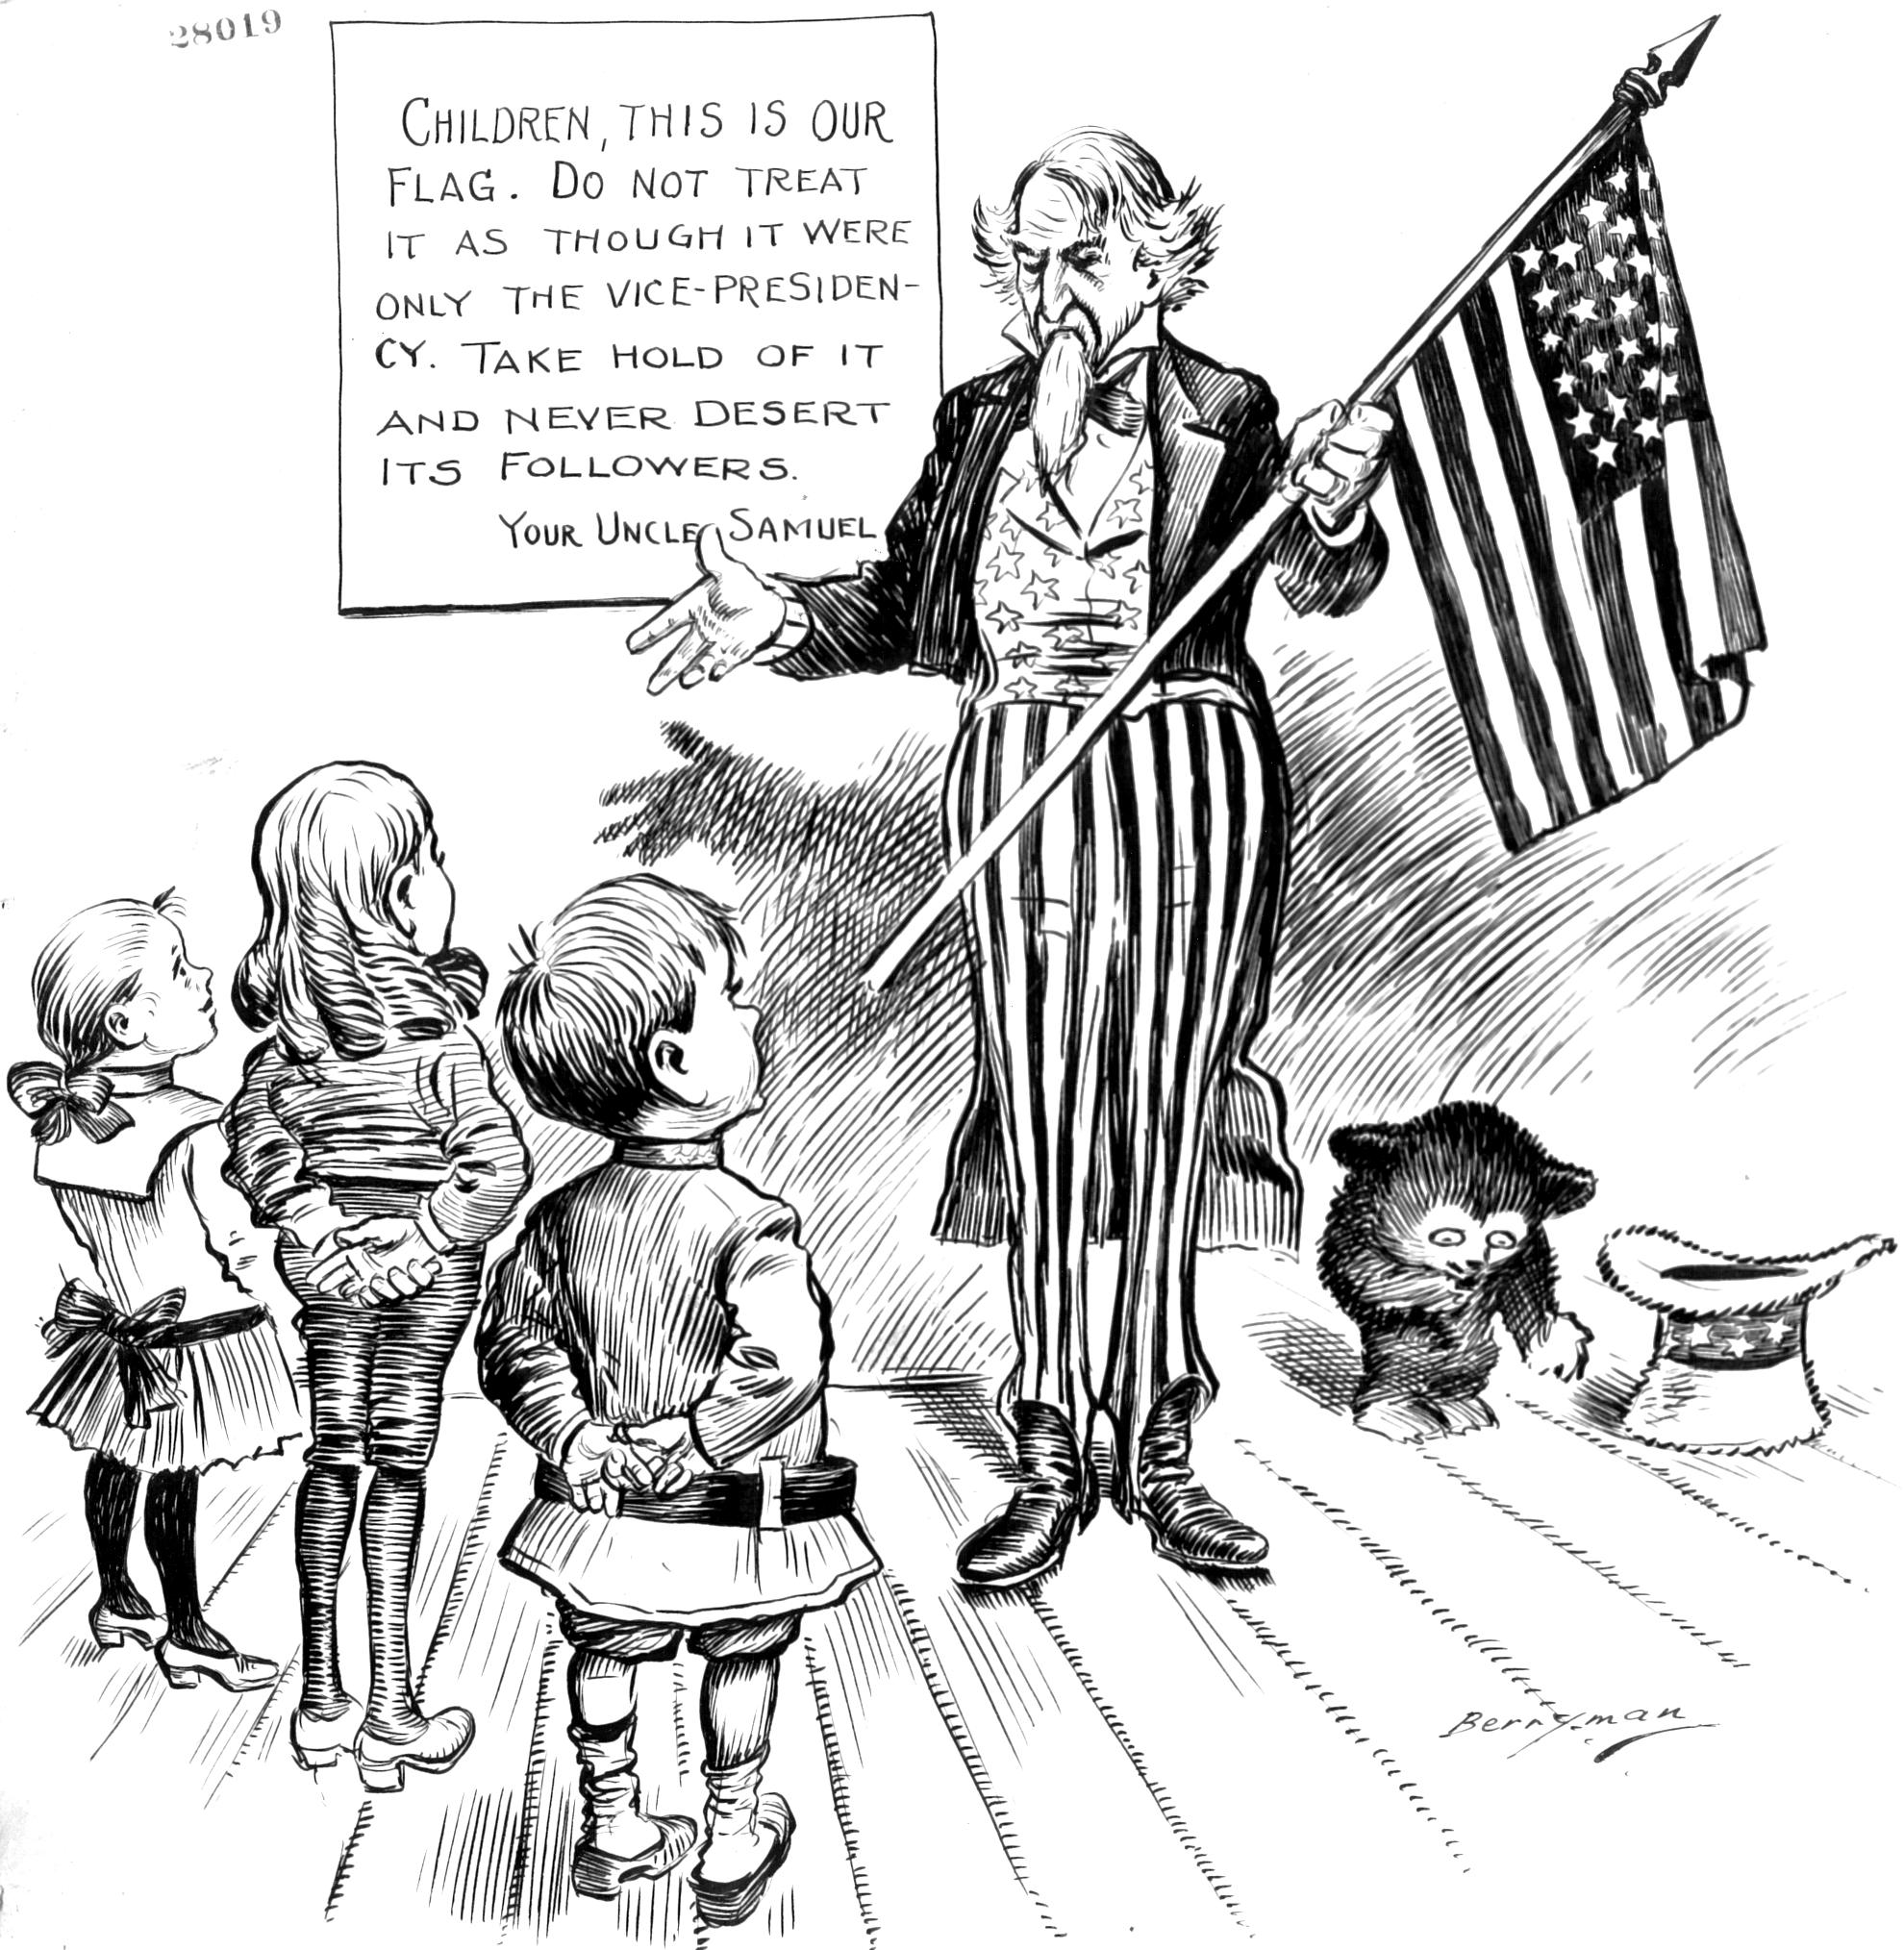 the importance of the national flag and its meaning to the american society Why do americans display their flag seemingly everywhere learn more about  the origins of american patriotism in this howstuffworks article  the flag  manufacturers association of america estimates that some 150 million  let me  just say that the american veneration of the national flag is not unique,.